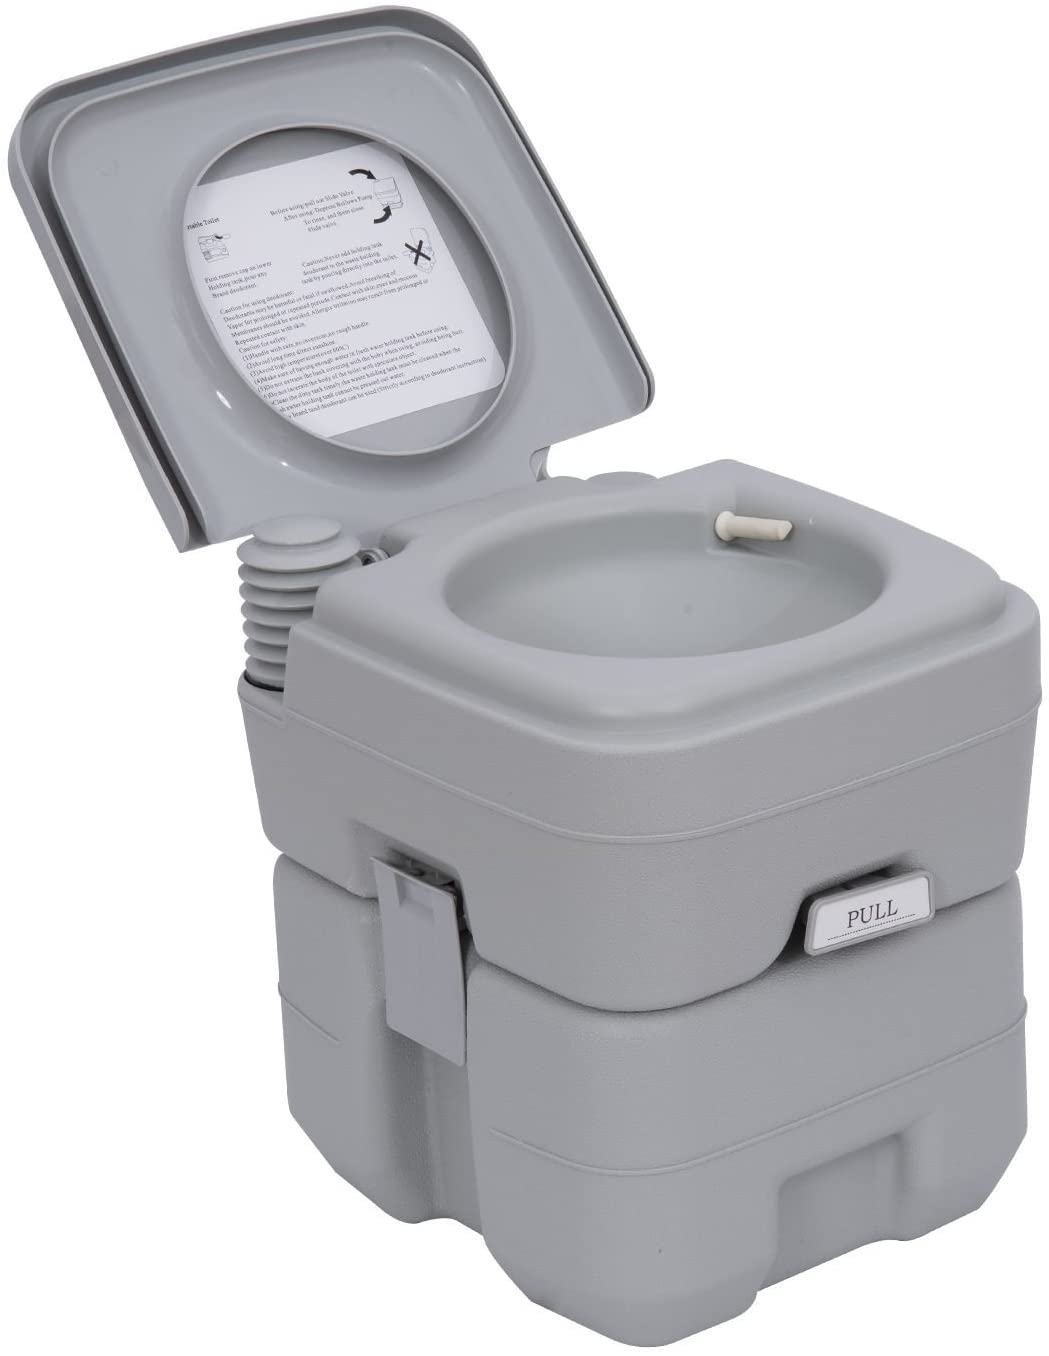 Outsunny Portable Travel Mobile Toilet Outdoor Camping Handle WC Grey